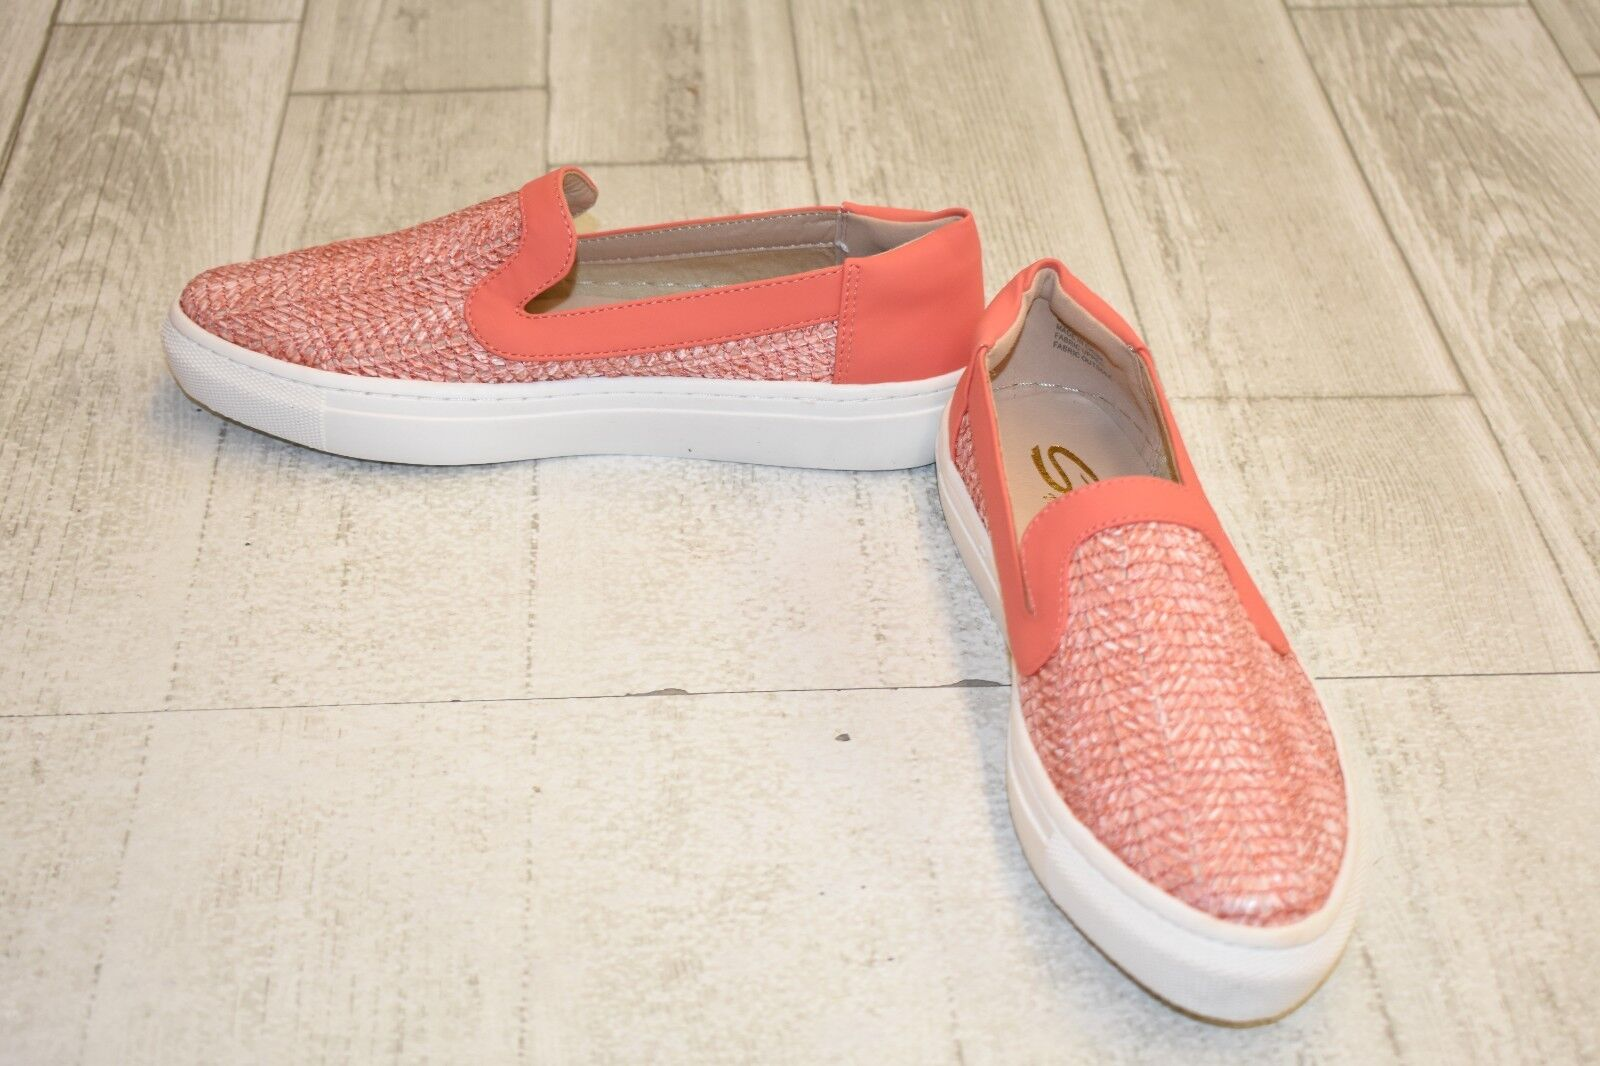 Sbicca Rafa Slip On shoes - Women's Size 7, Coral